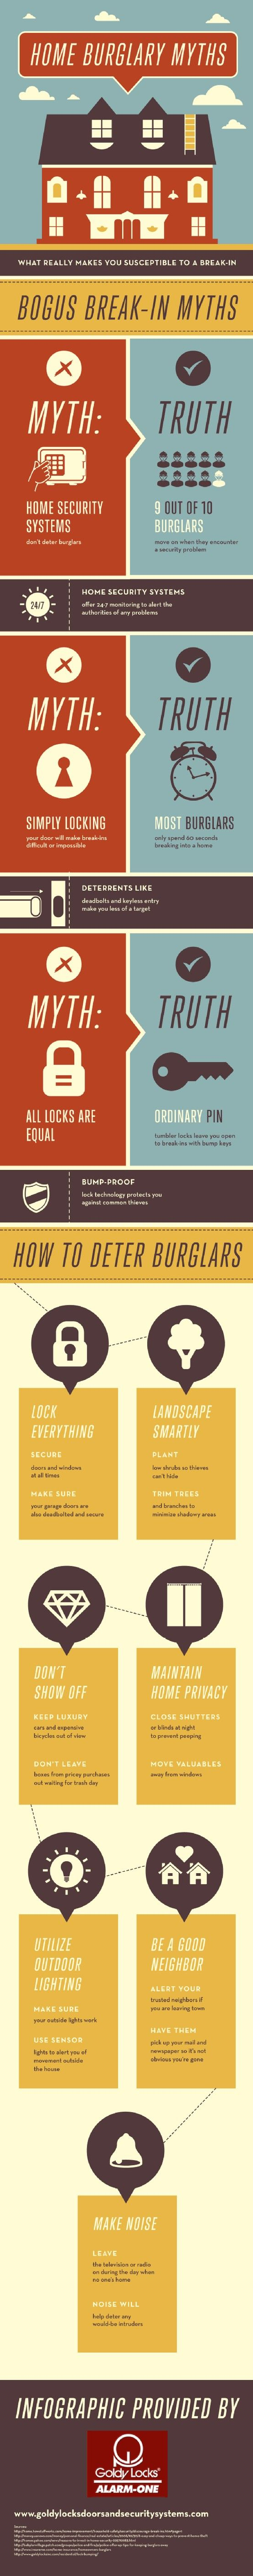 Most burglars only spend 60 seconds breaking into a home. Home security systems provide constant monitoring to keep a property safe from potential break-ins. Check out this infographic from a security company in Chicago to learn more.